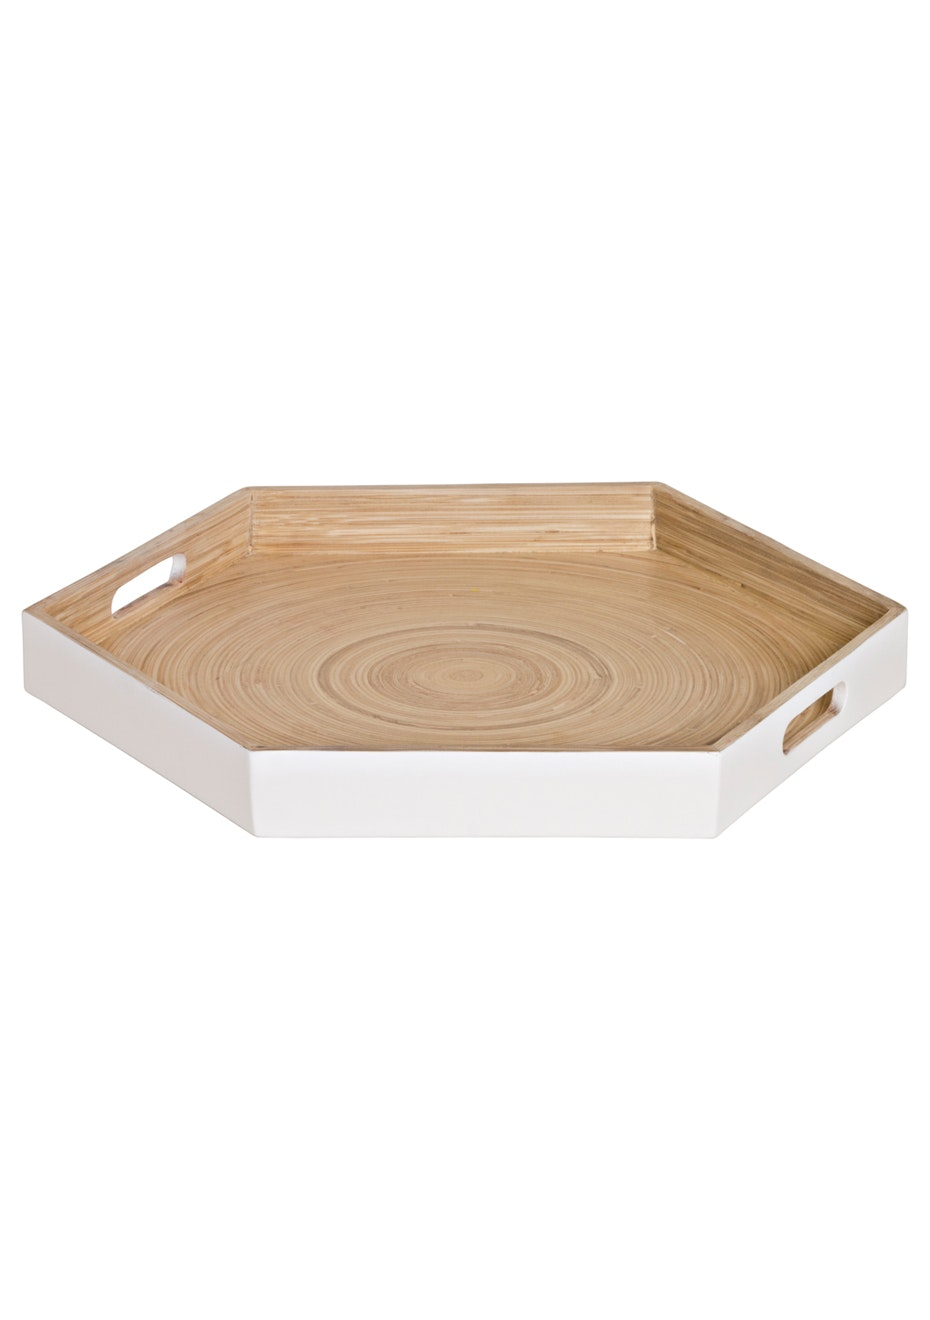 Lacquered Metallic Tray - White/Wood